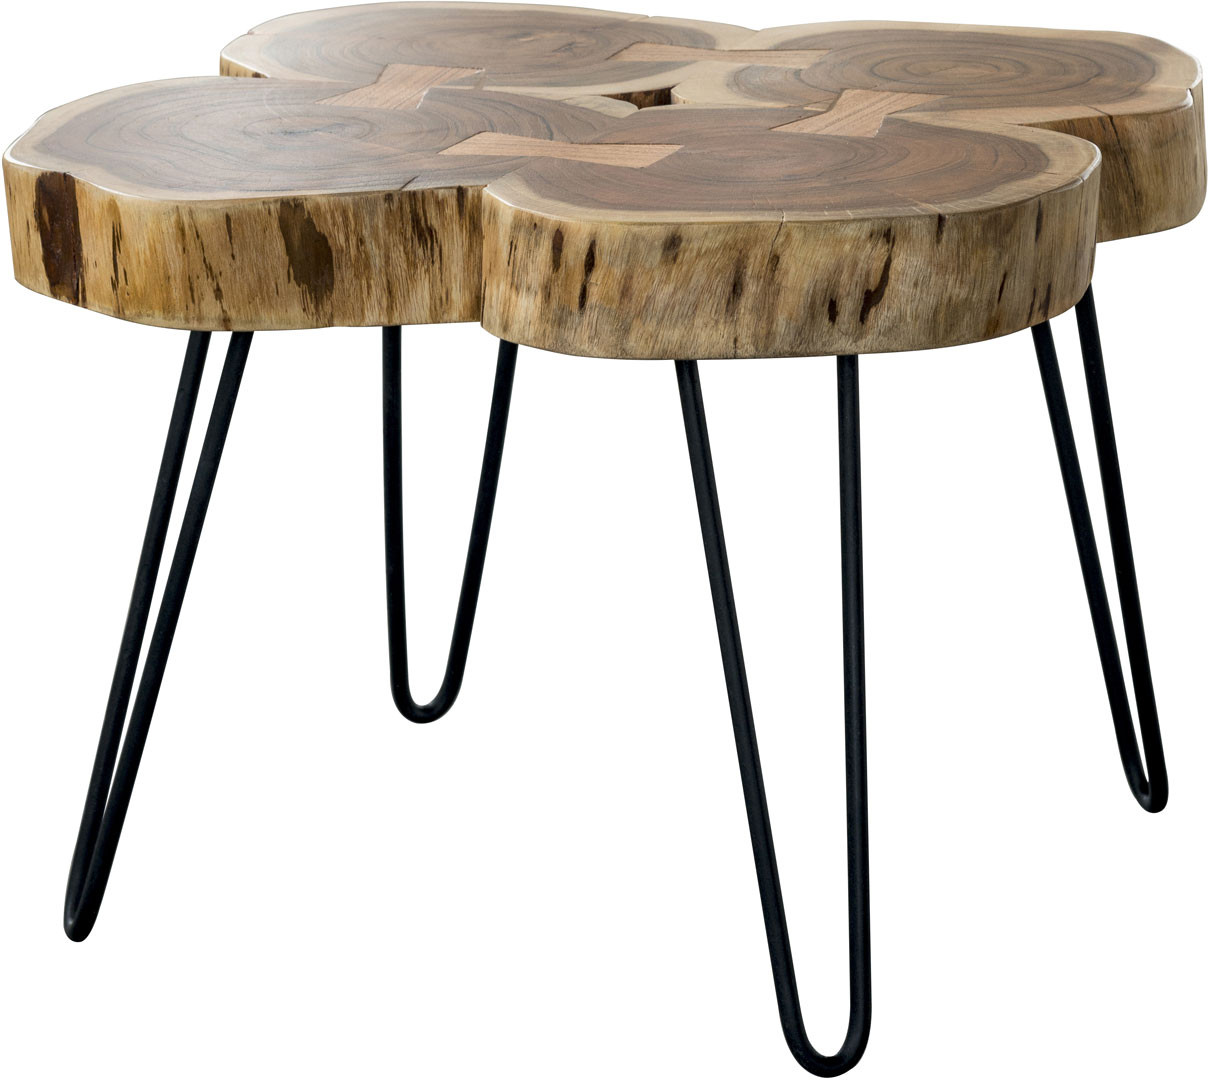 Table basse contemporaine en bois massif d'acacia Antoine